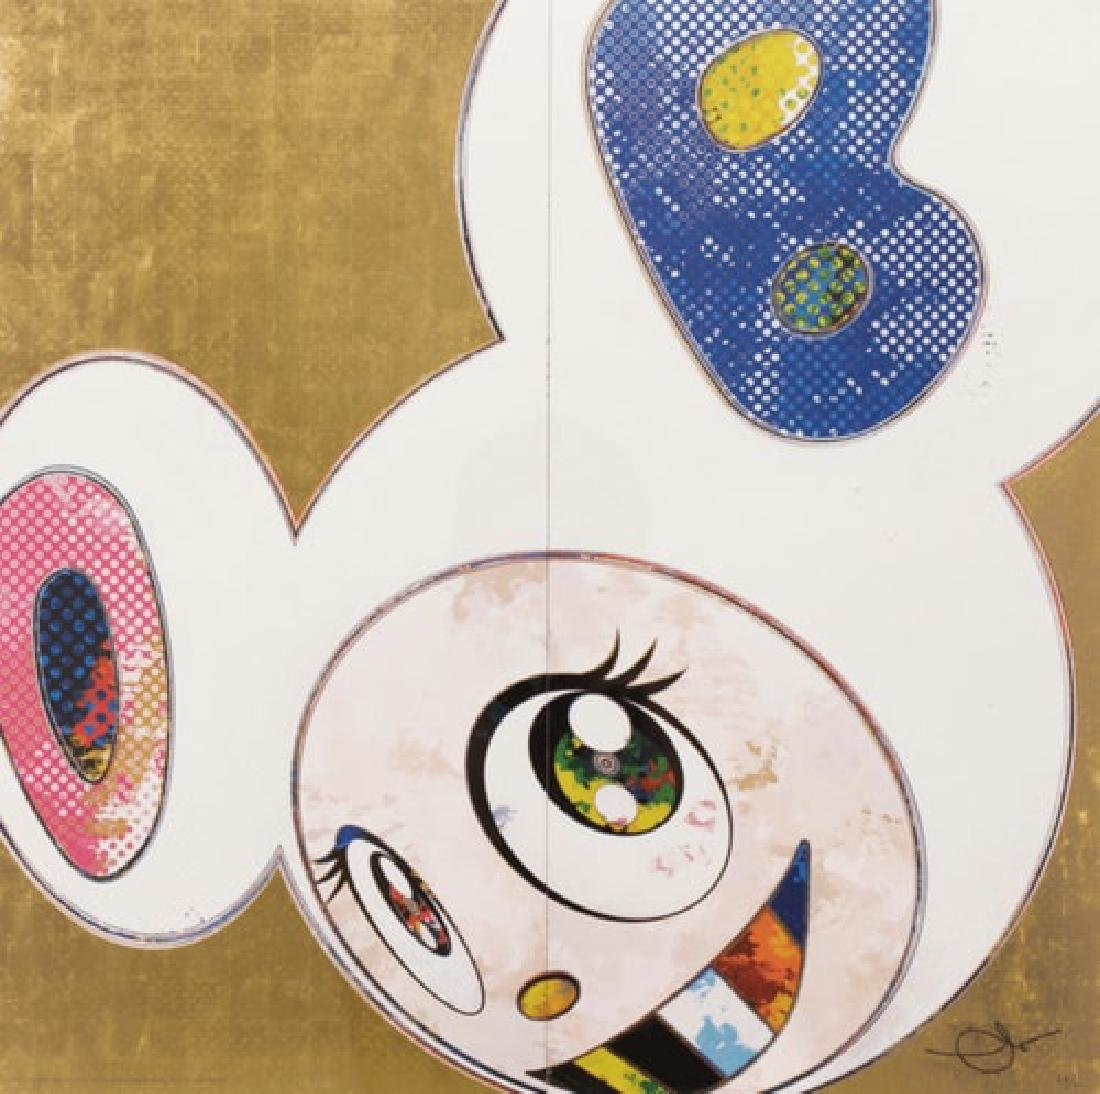 TAKASHI MURAKAMI Dob in Pure White Robe (Pink & Blue)